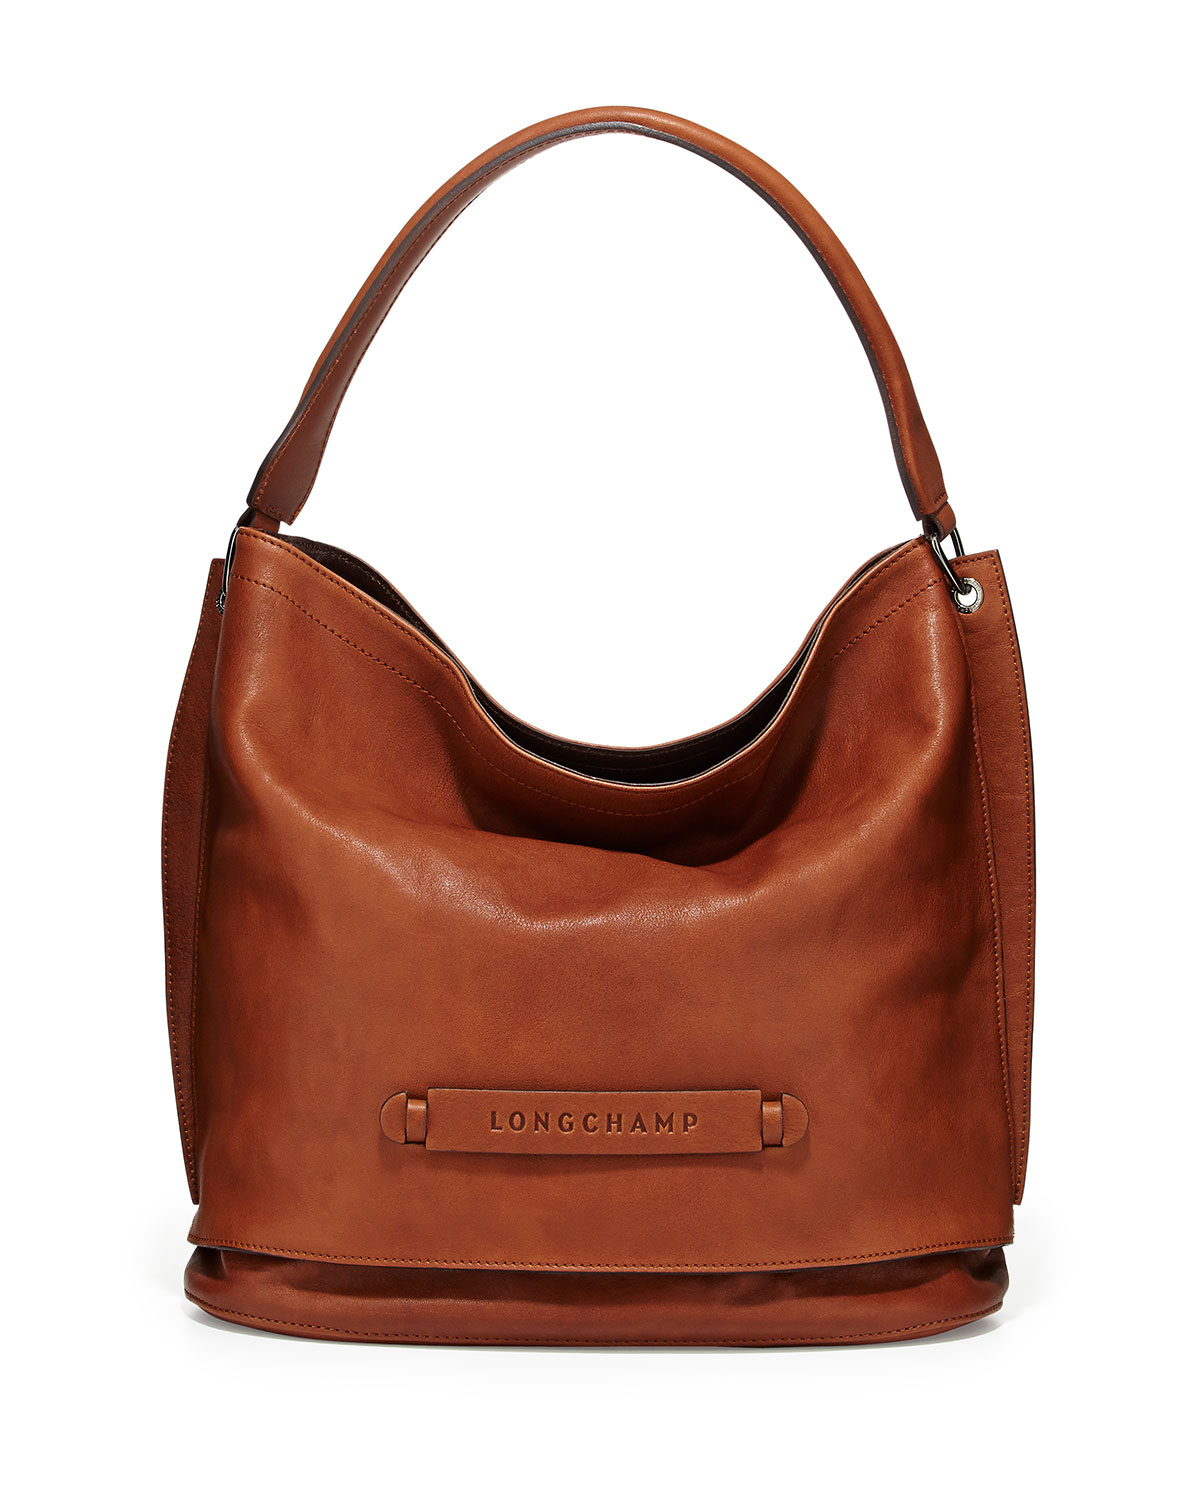 Free shipping on Hobo Bags for women at goodforexbinar.cf Shop the latest hobo bag styles from the best brands. Totally free shipping & returns.